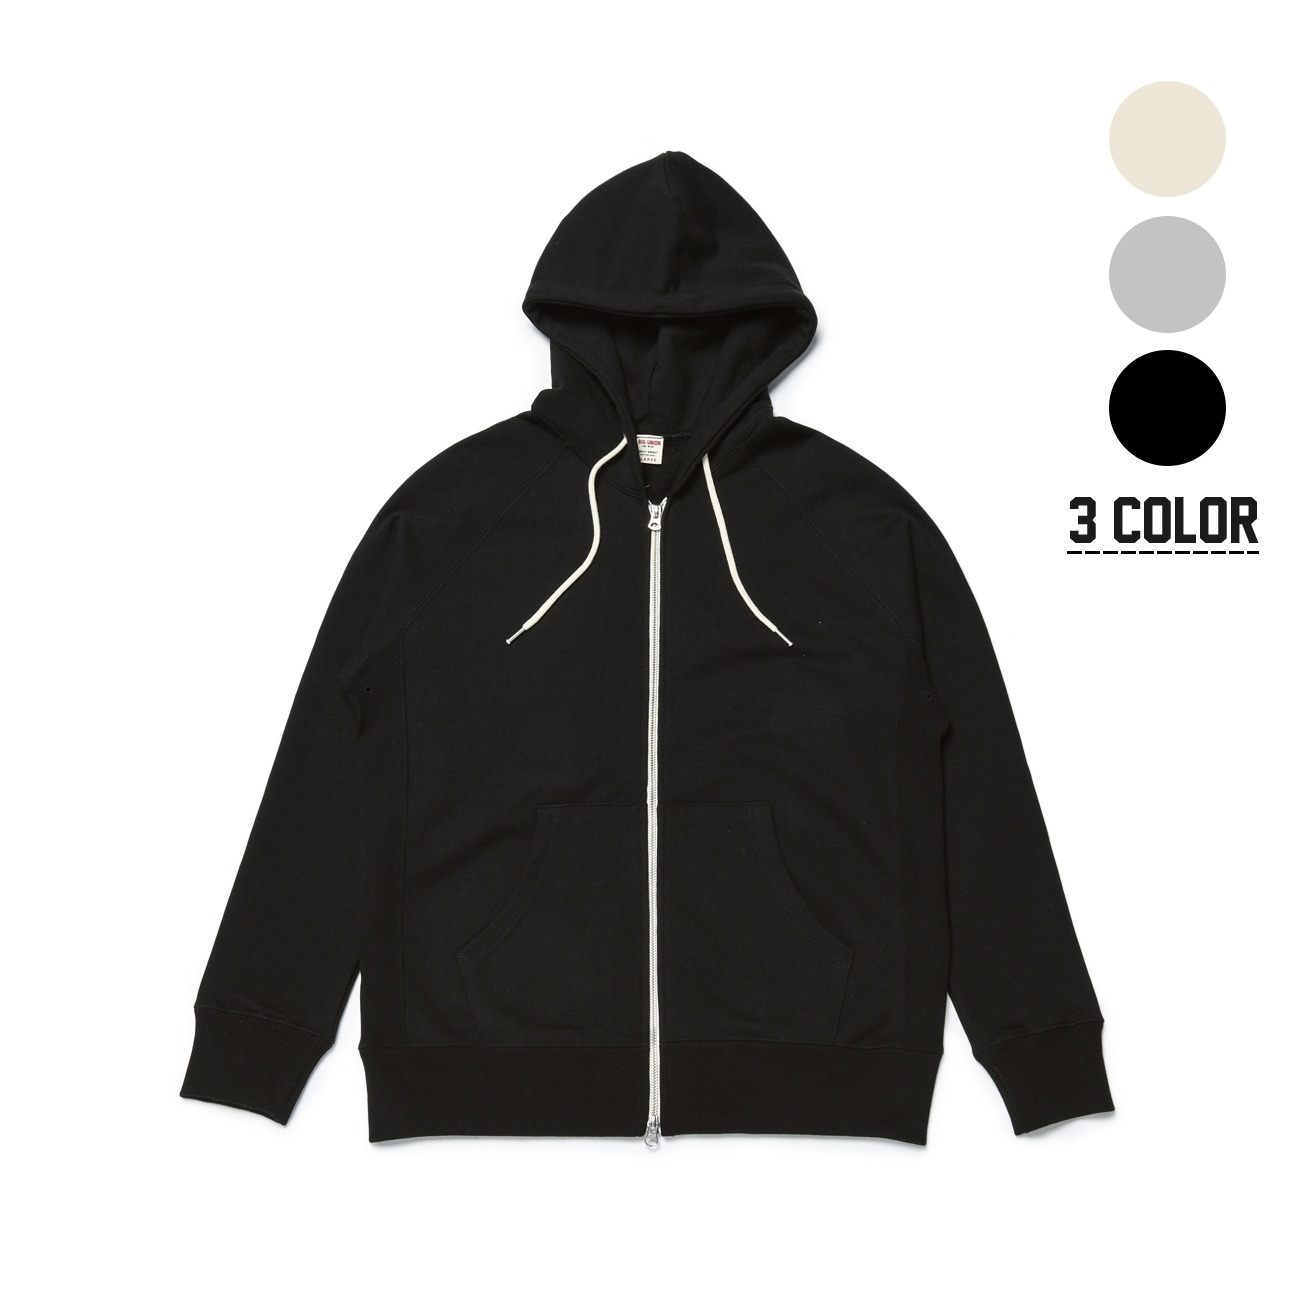 89 Zip Up Hood [3 Color]